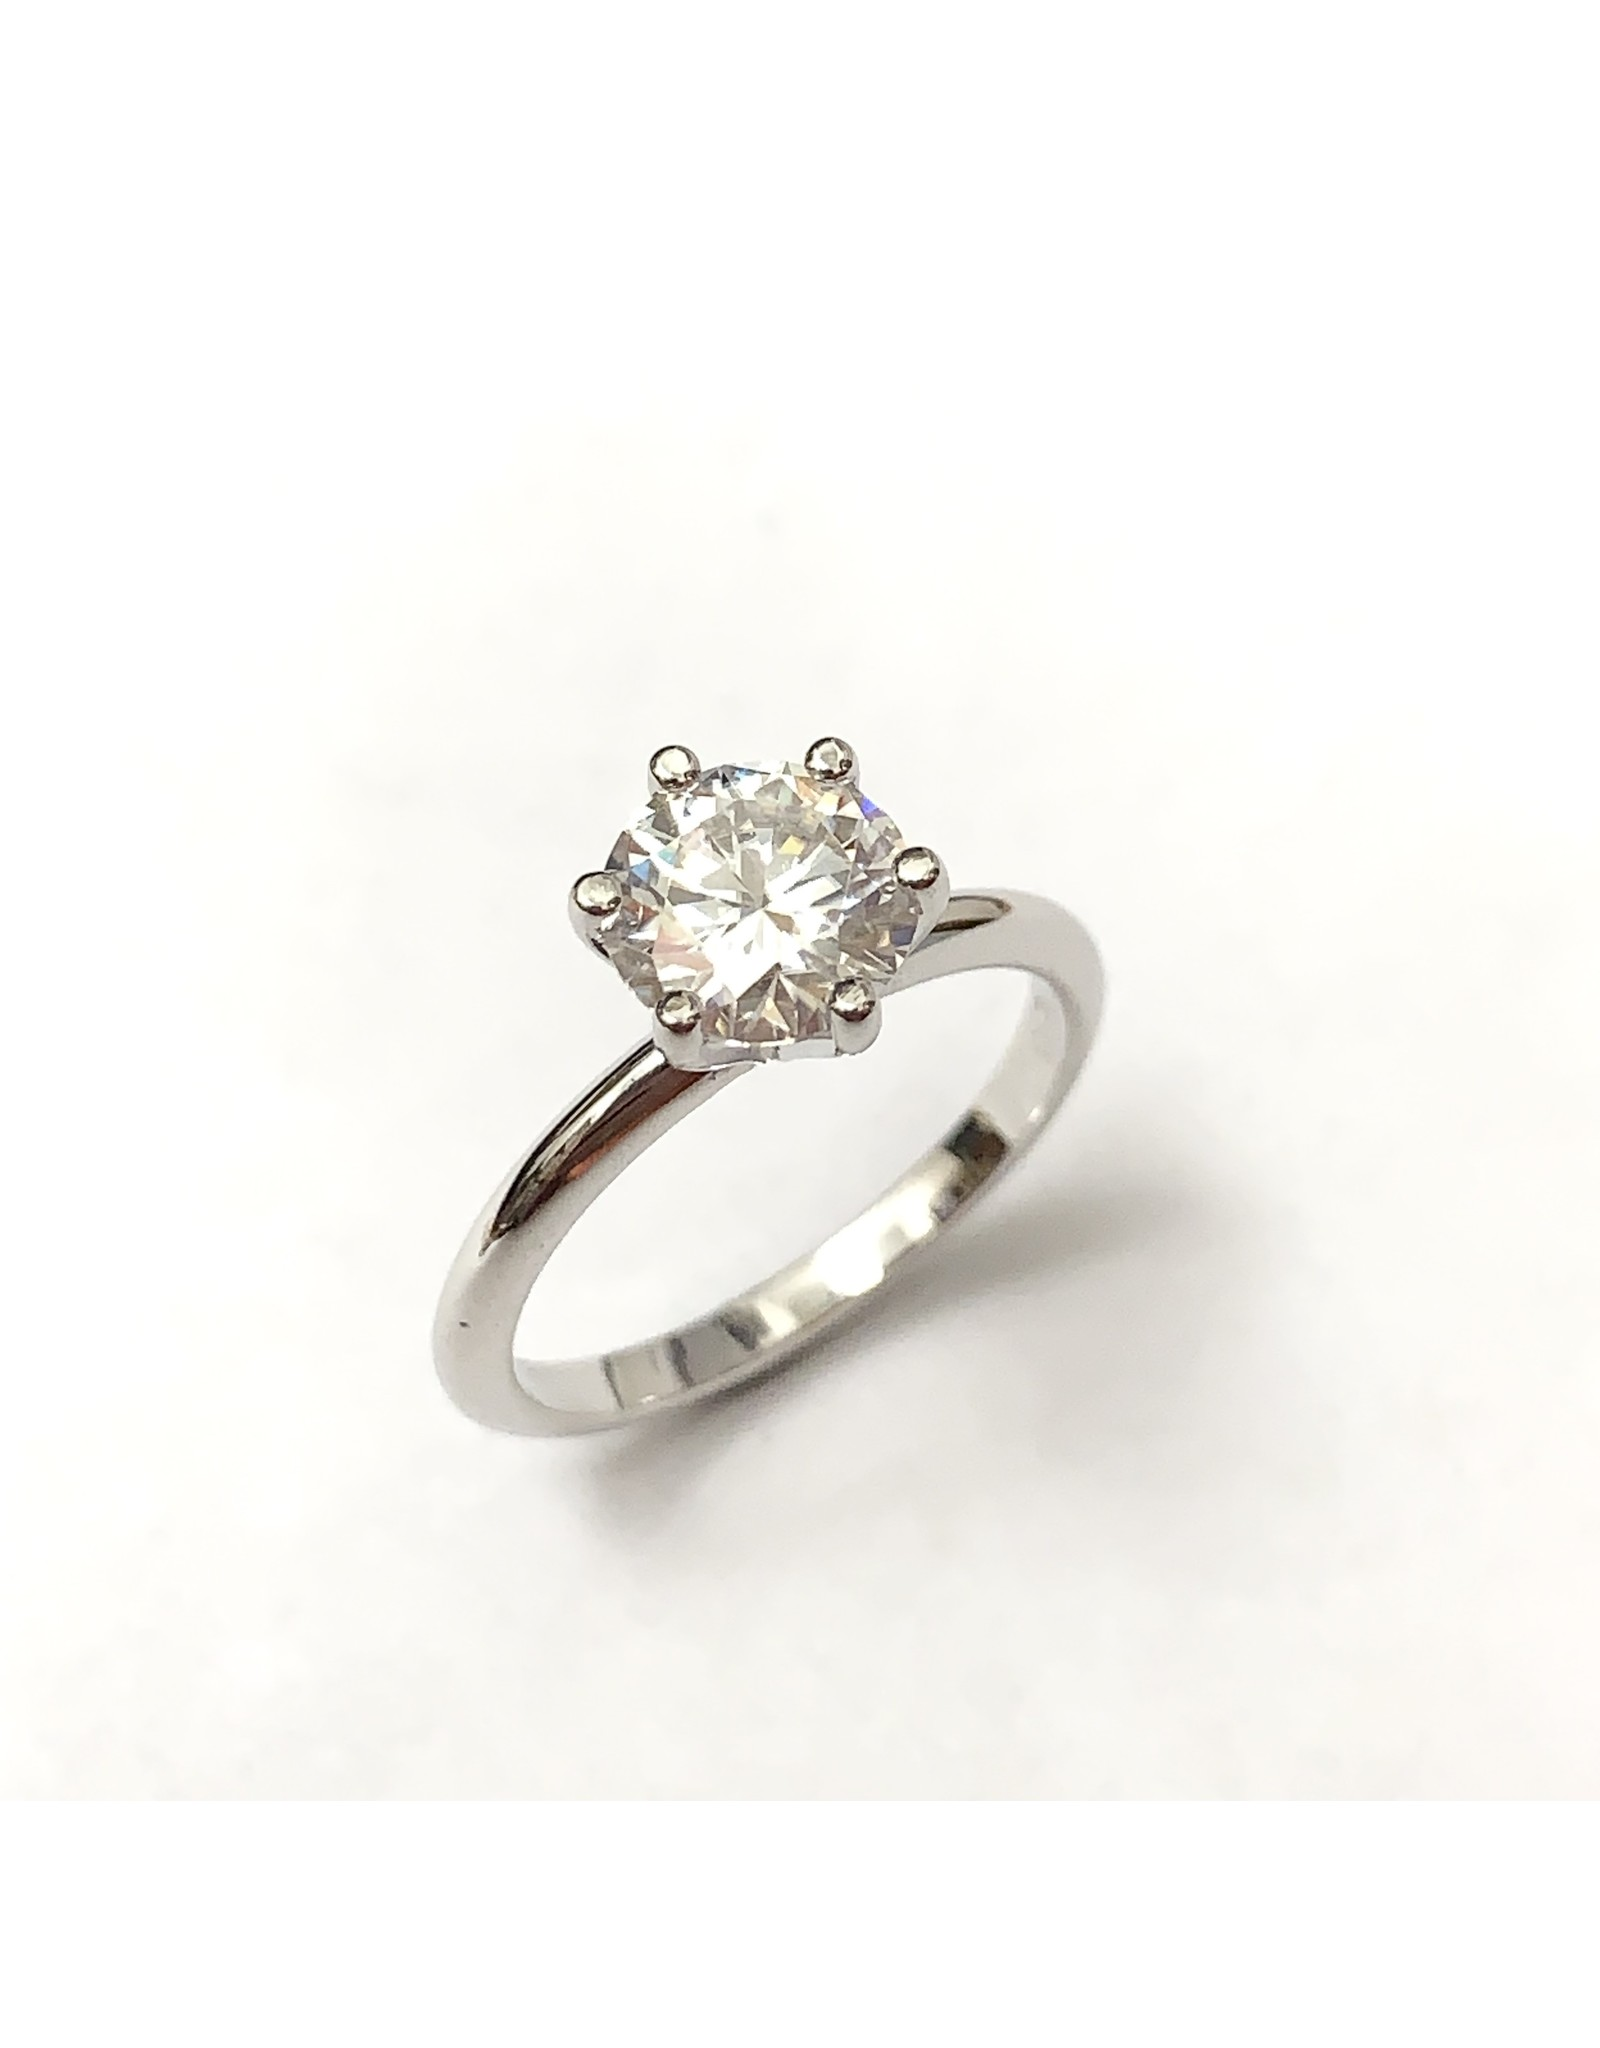 7mm Moissanite Solitaire Ring 14KW